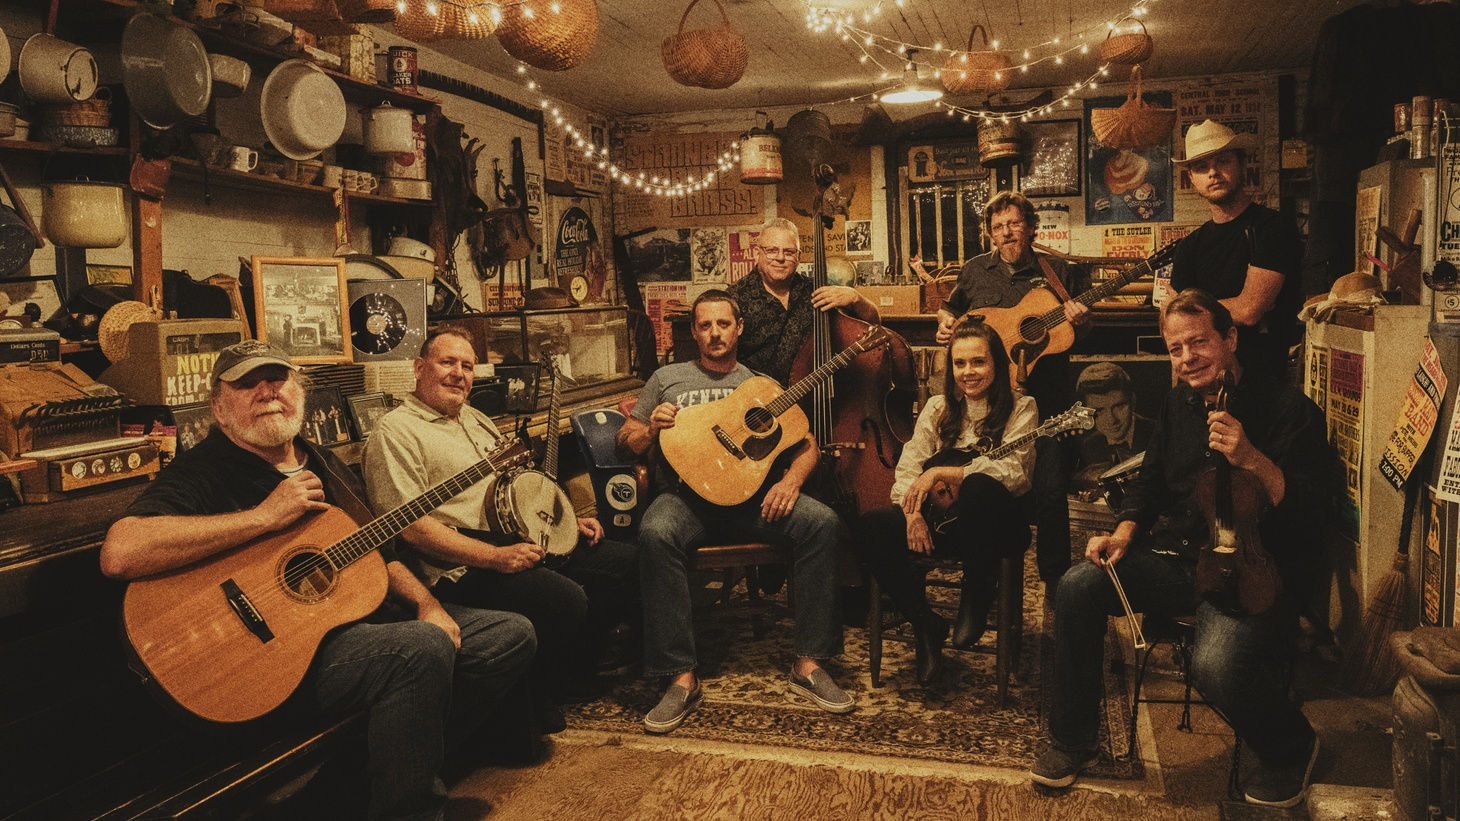 You can take the man out of Kentucky, but you can't take Kentucky out of the man. That's the verdict from Sturgill Simpson who returns to the music of his native land with his first bluegrass project.